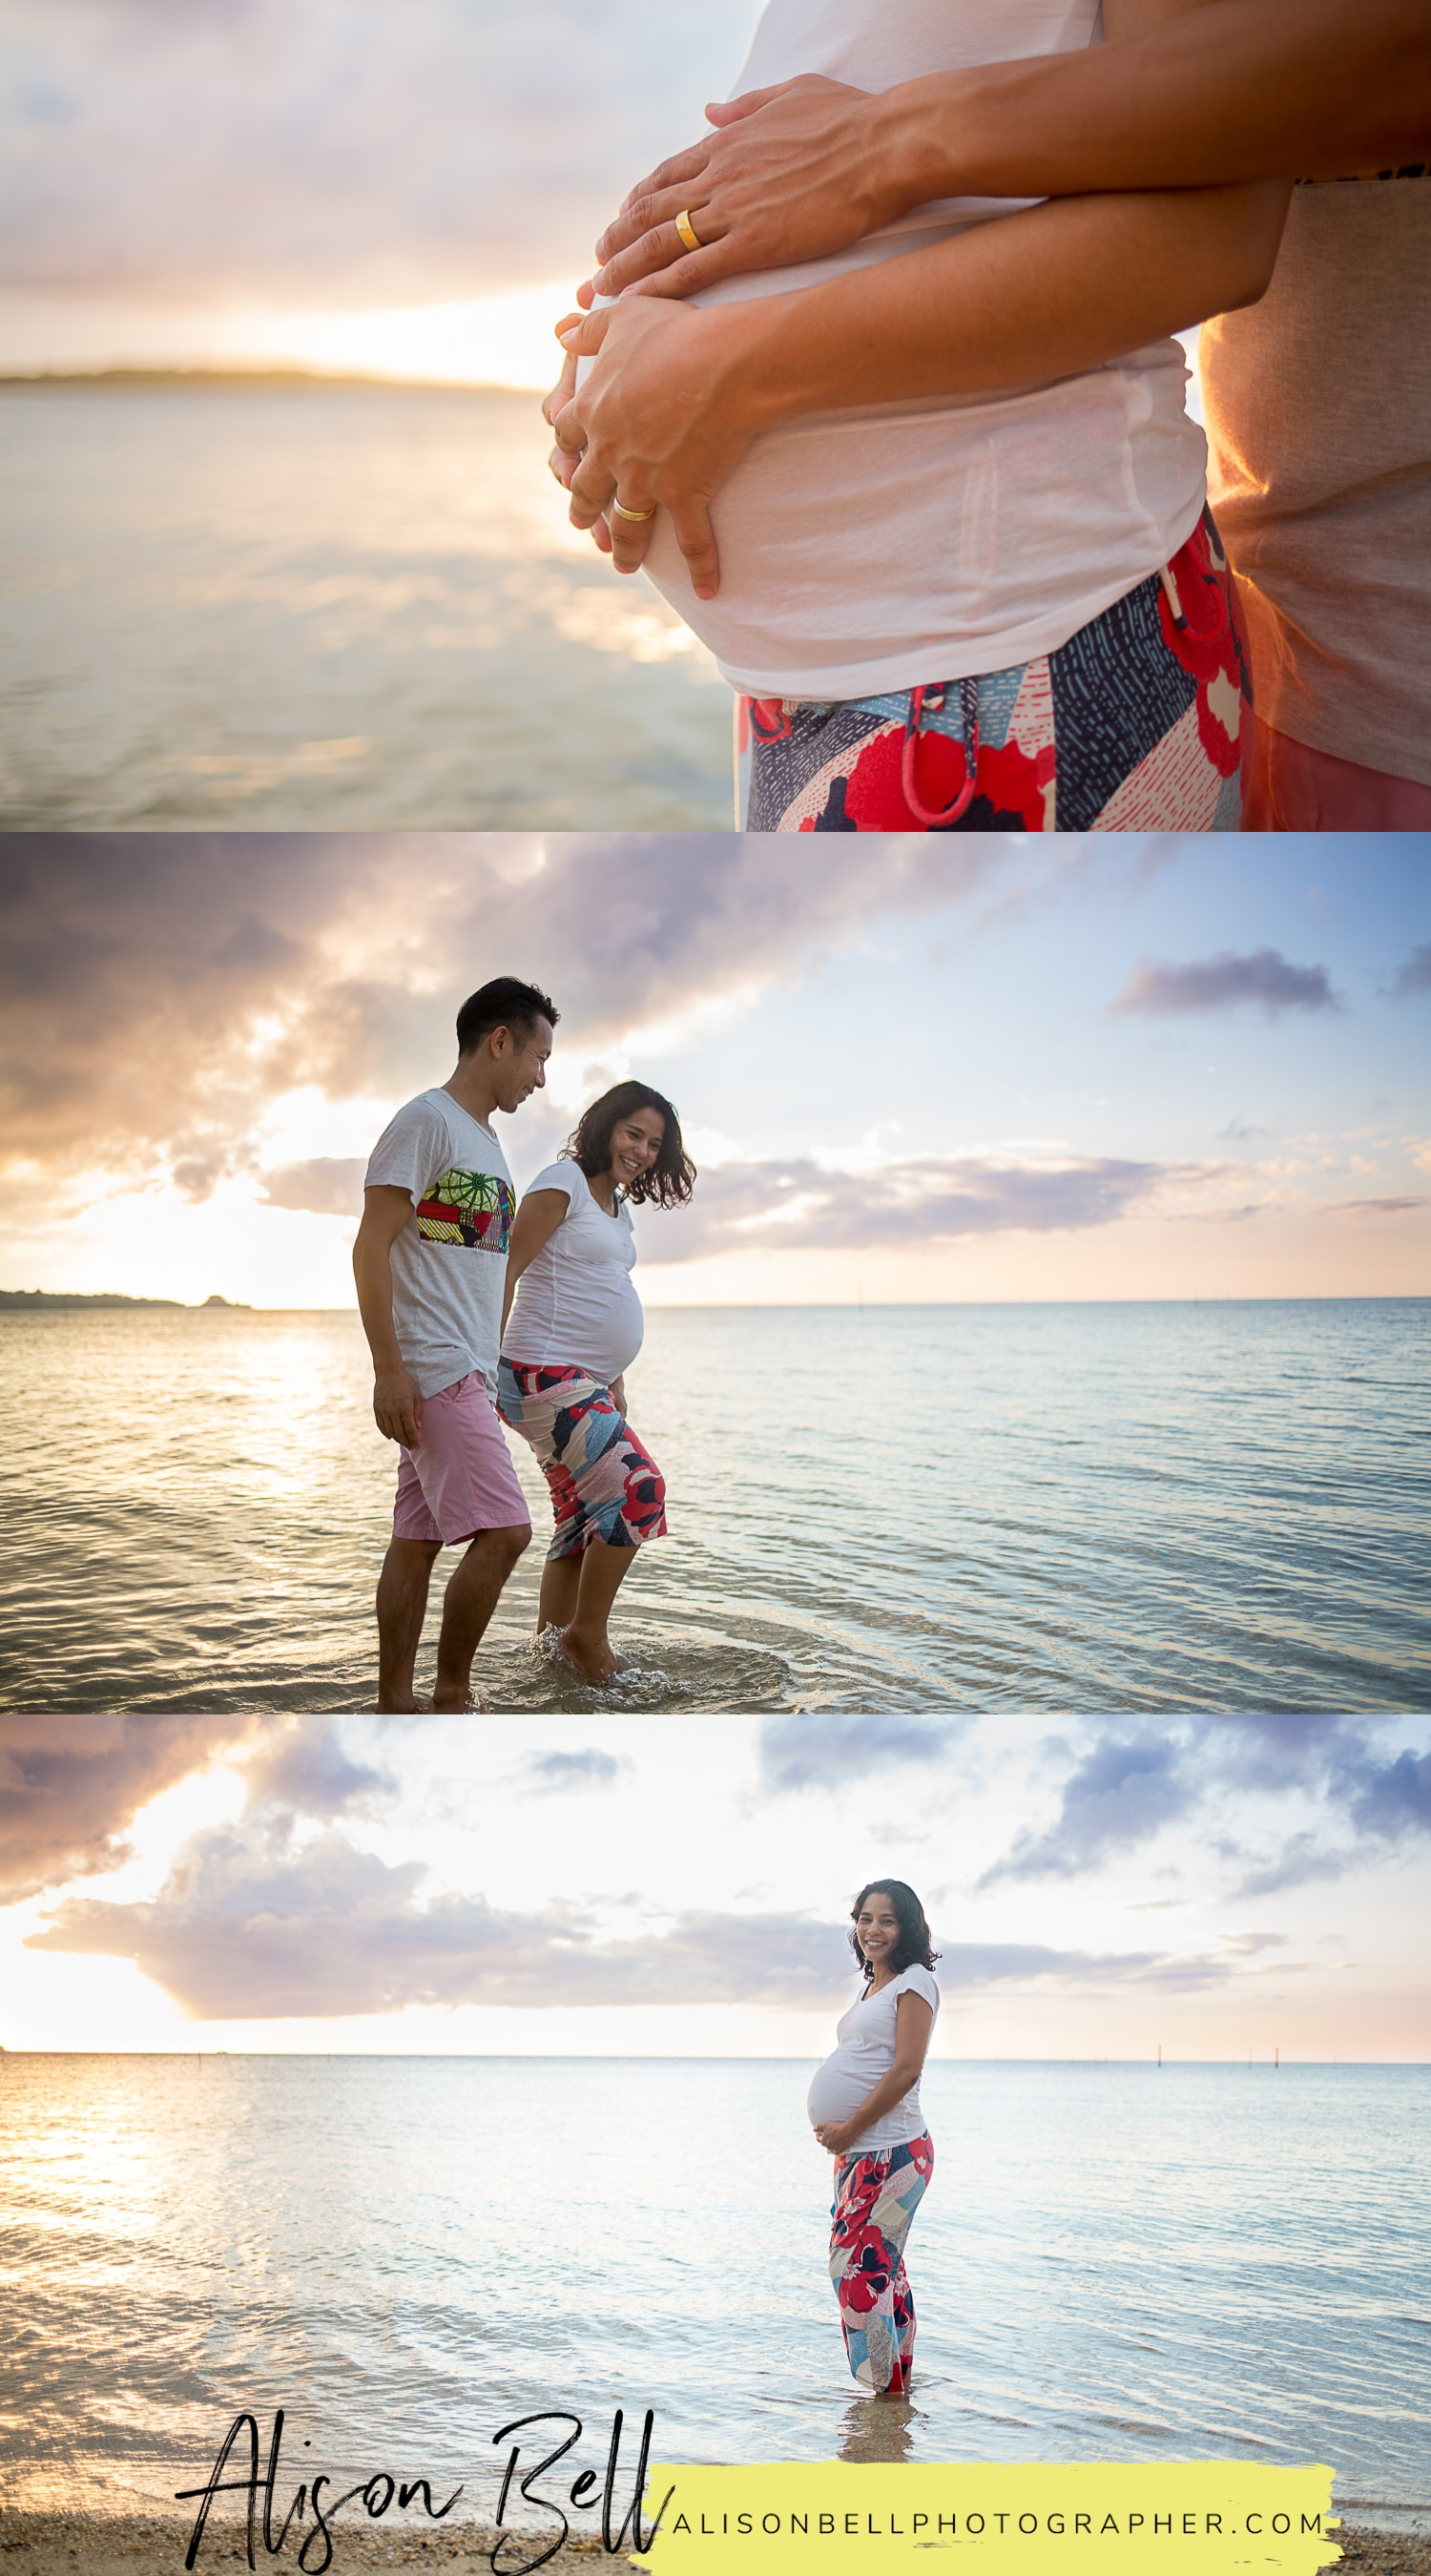 Maternity pregnancy photos on the beach in Okinawa Japan. Nakadomari Beach #alisonbellphotog alisonbellphotographer.com